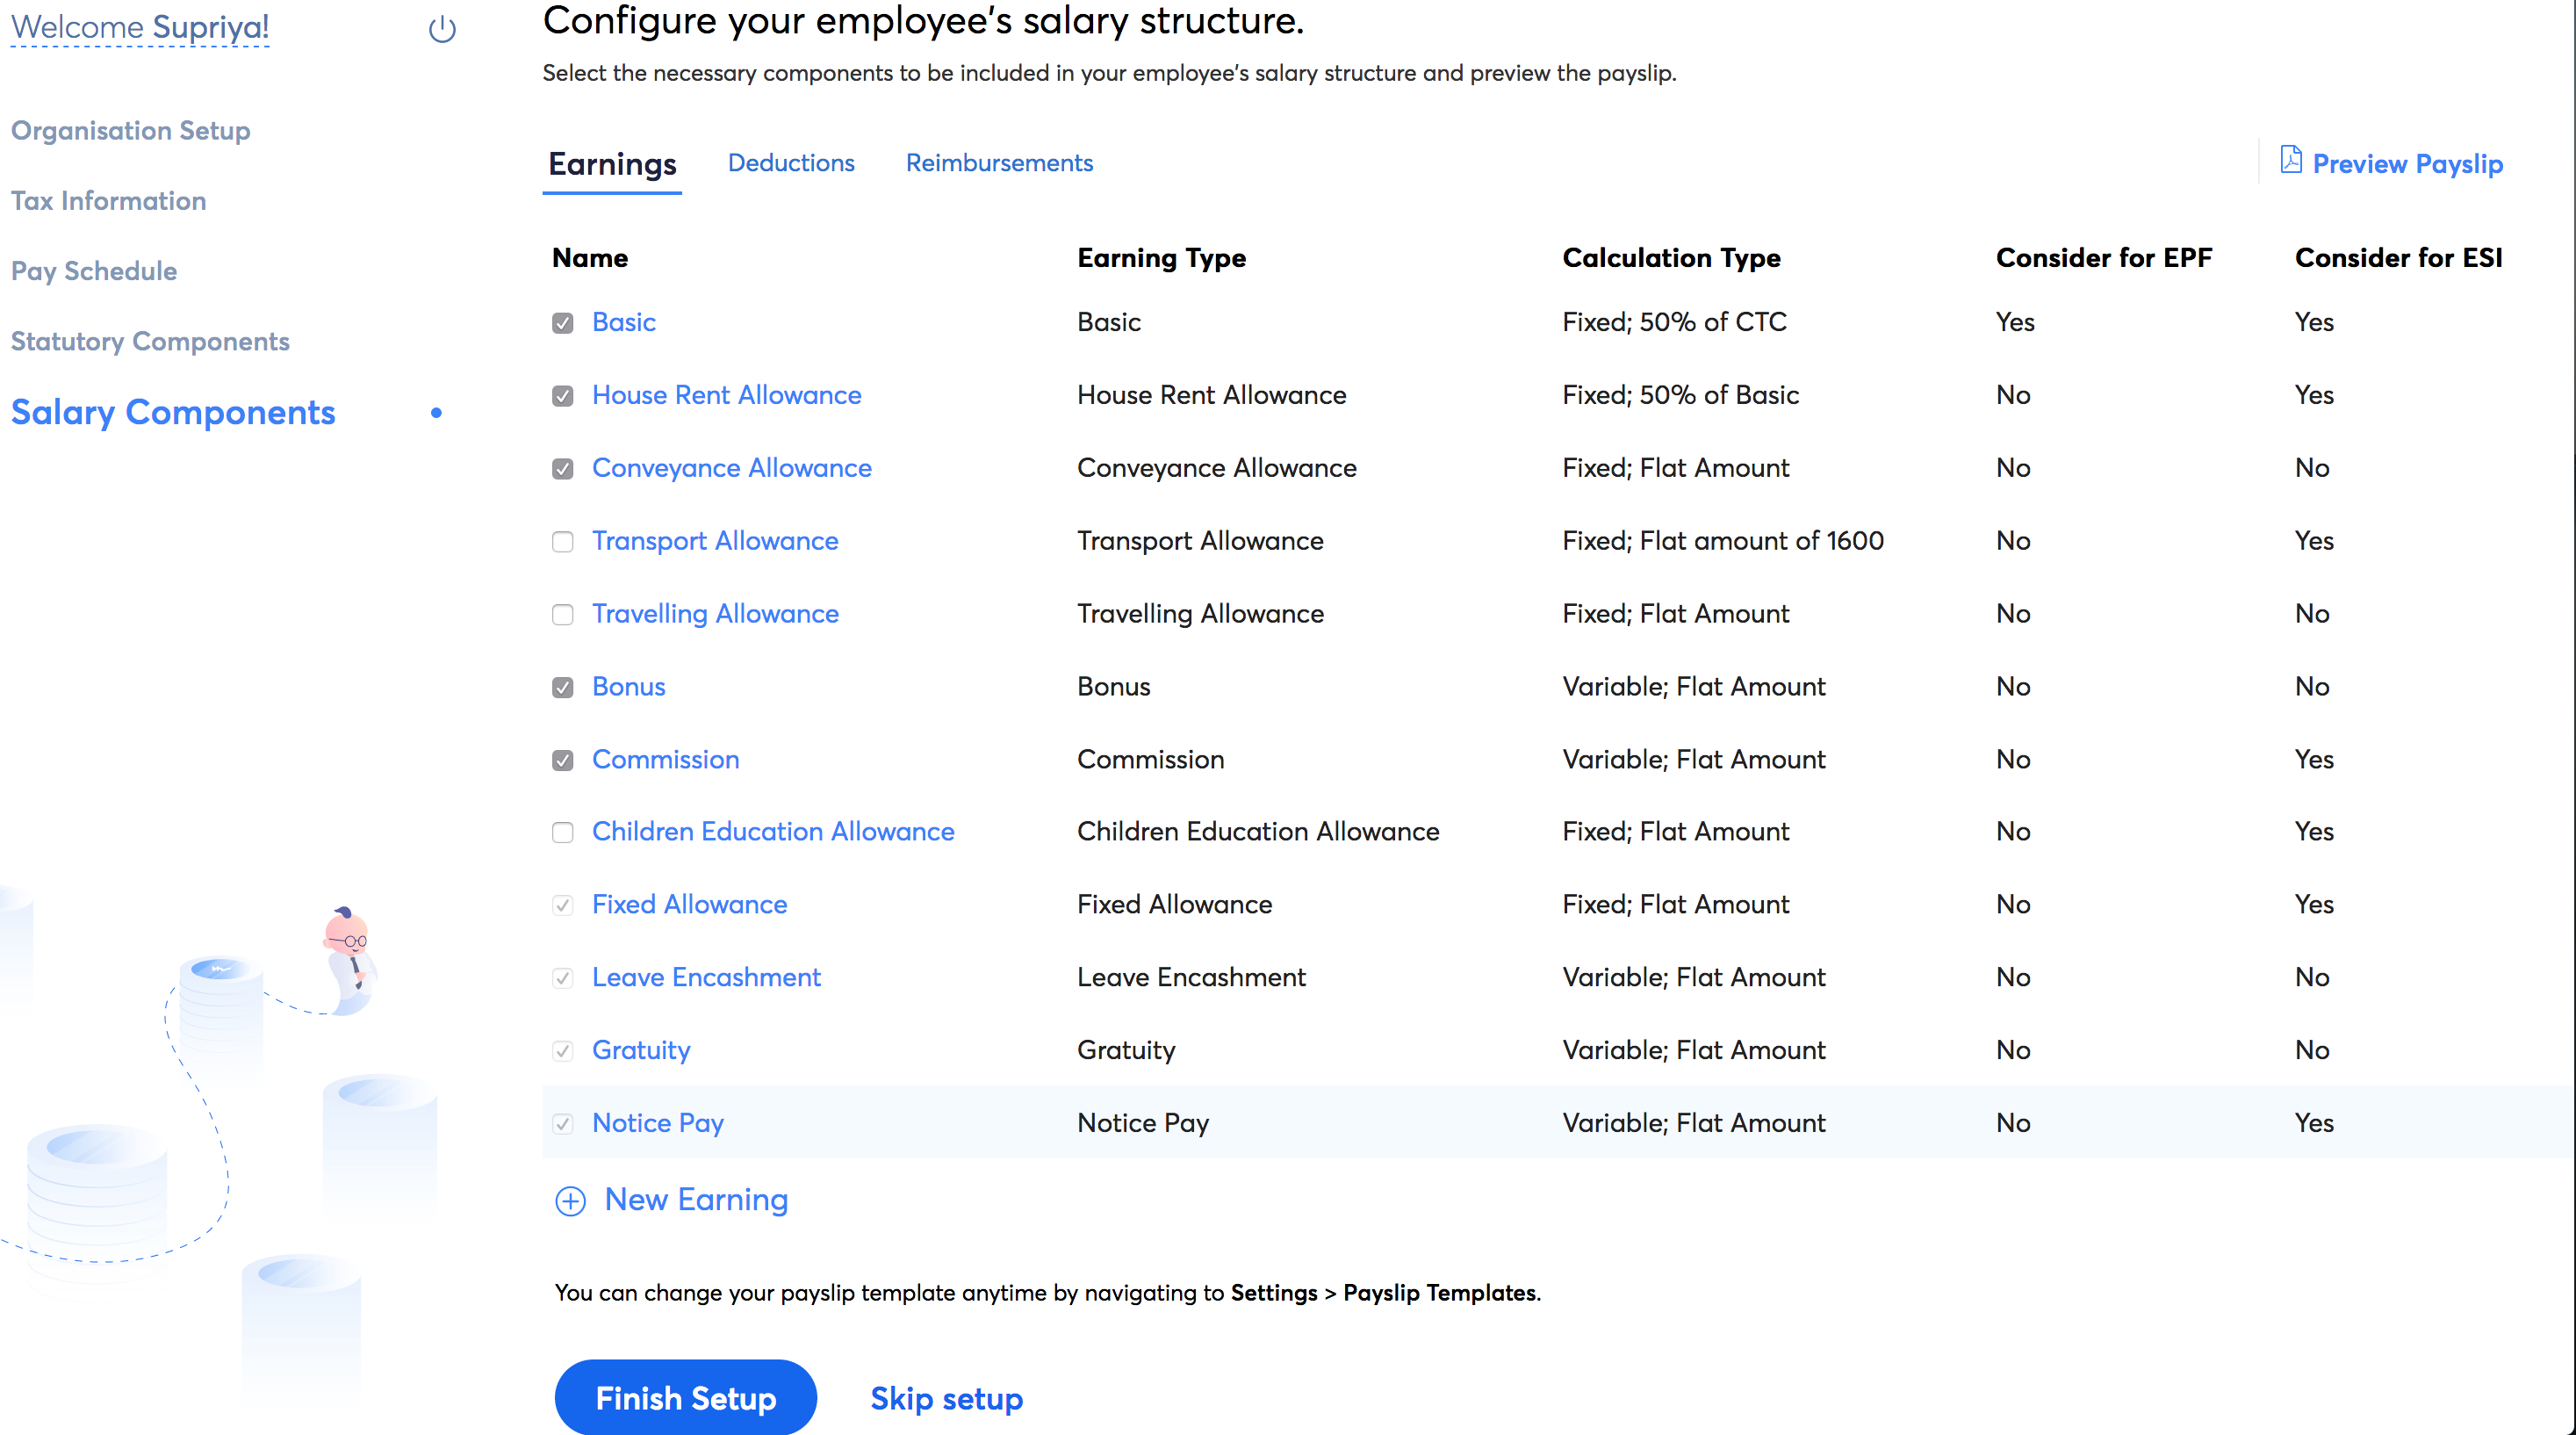 Salary Components